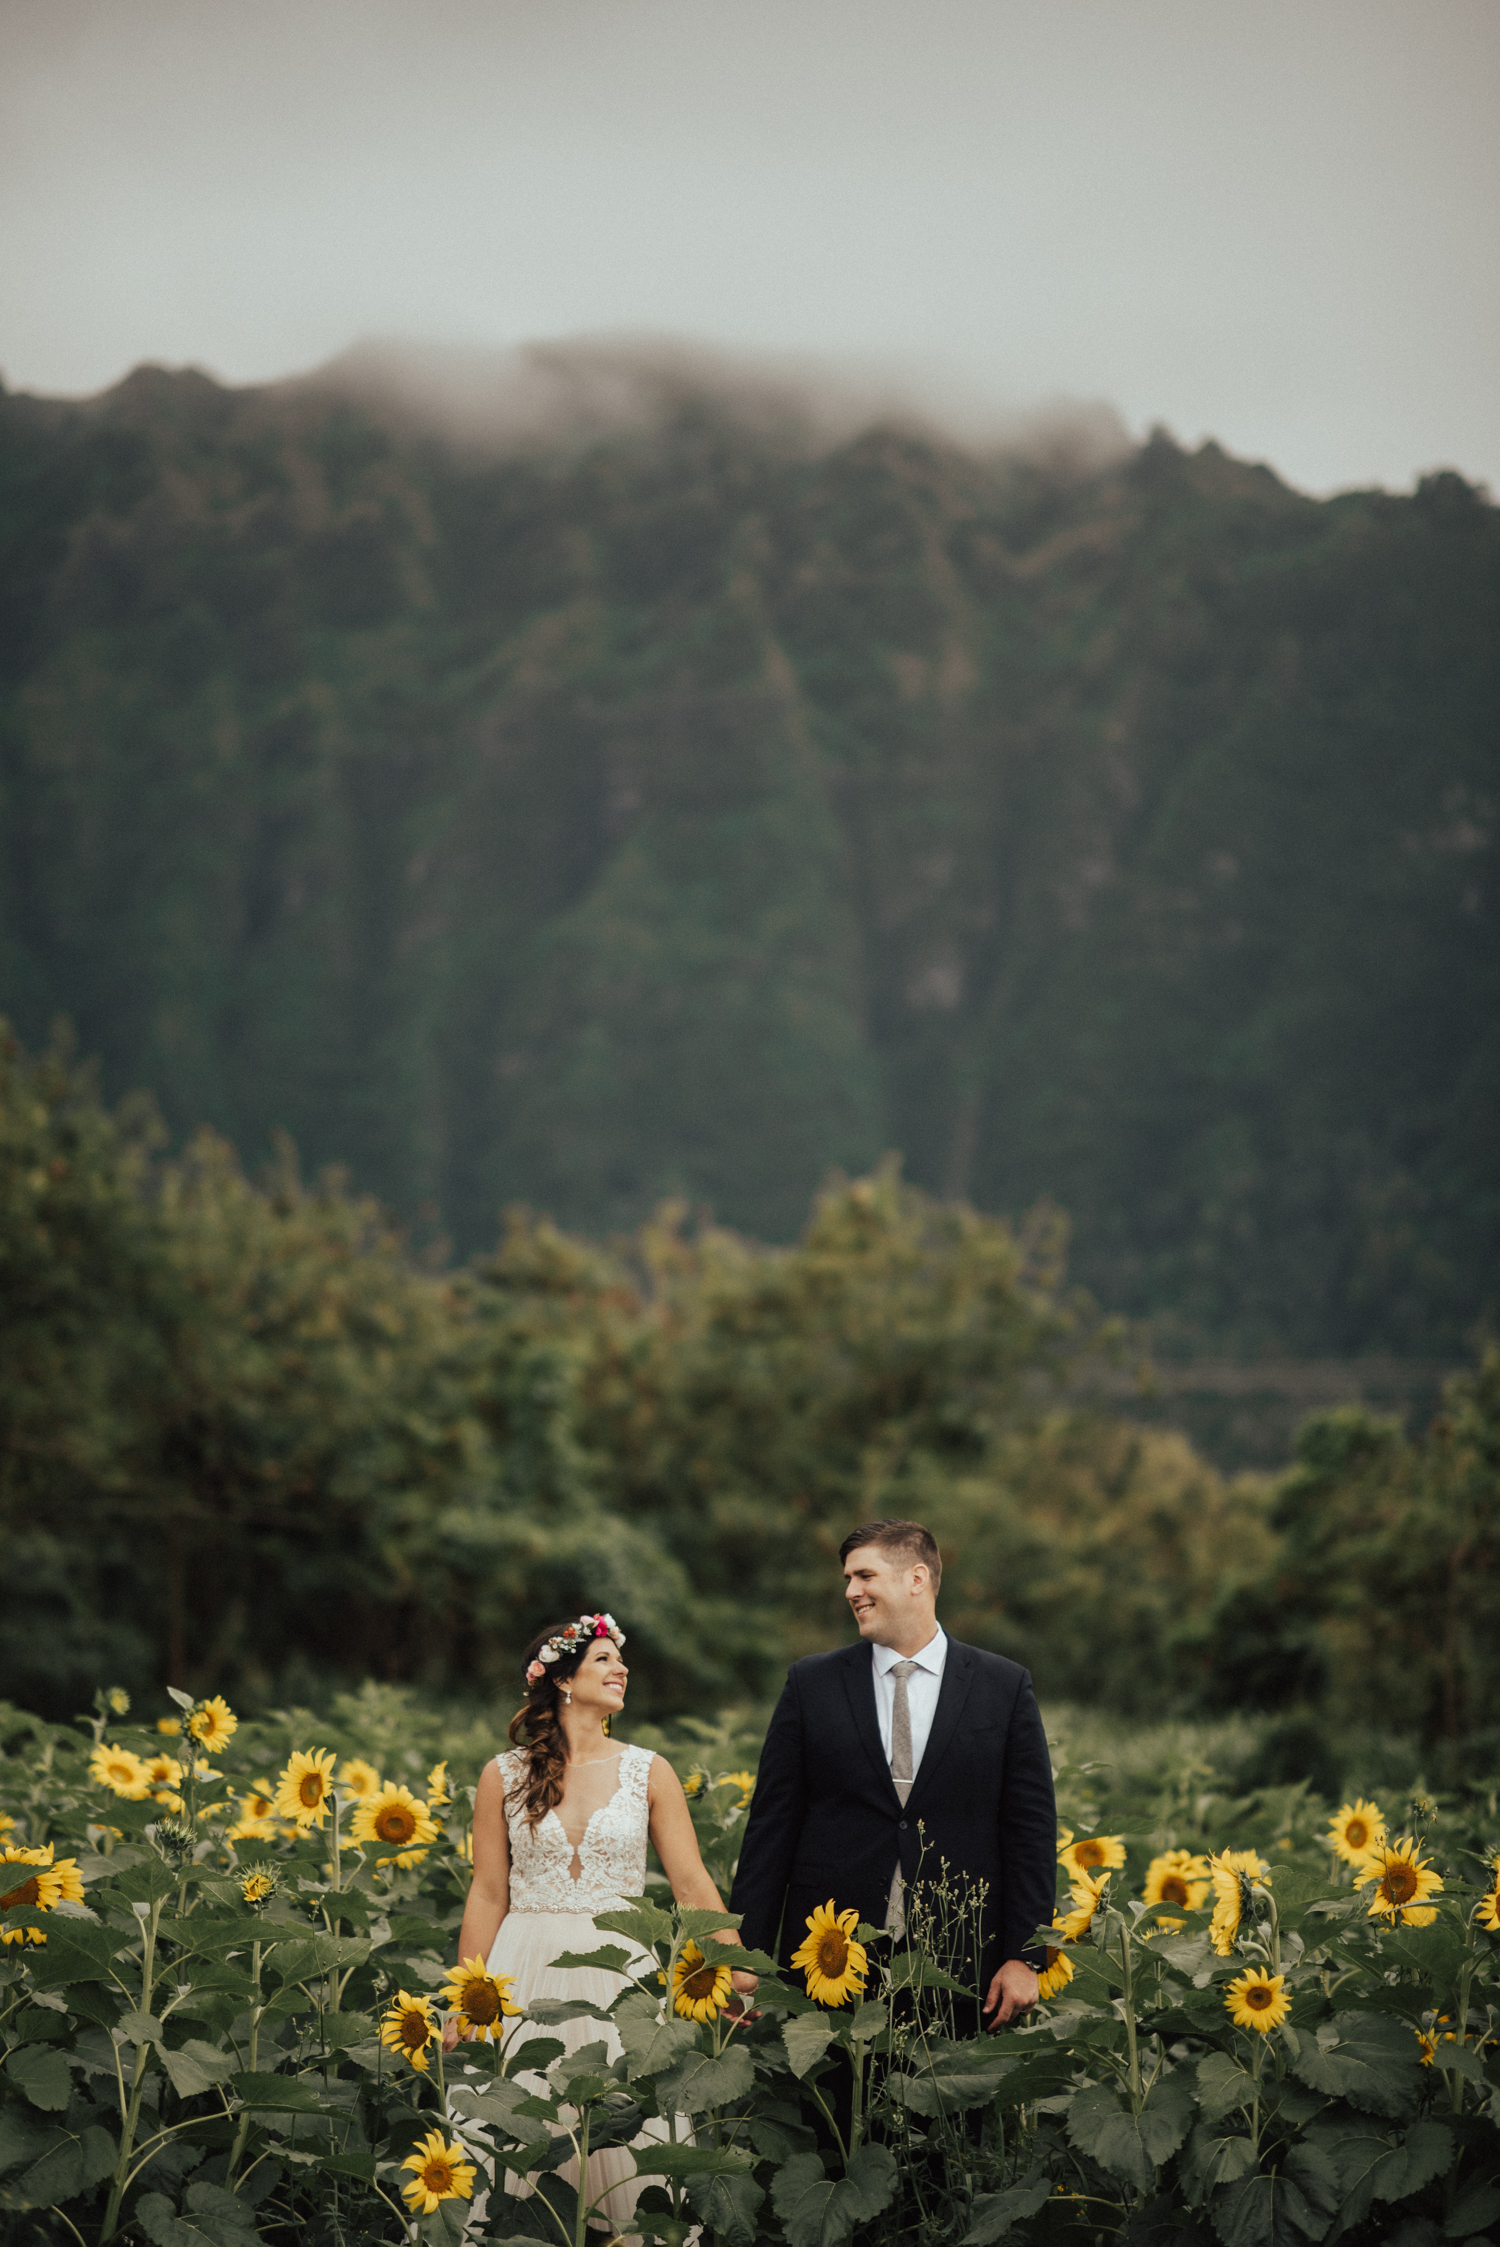 adventurous-Hawaii-elopement-photographers-62.jpg